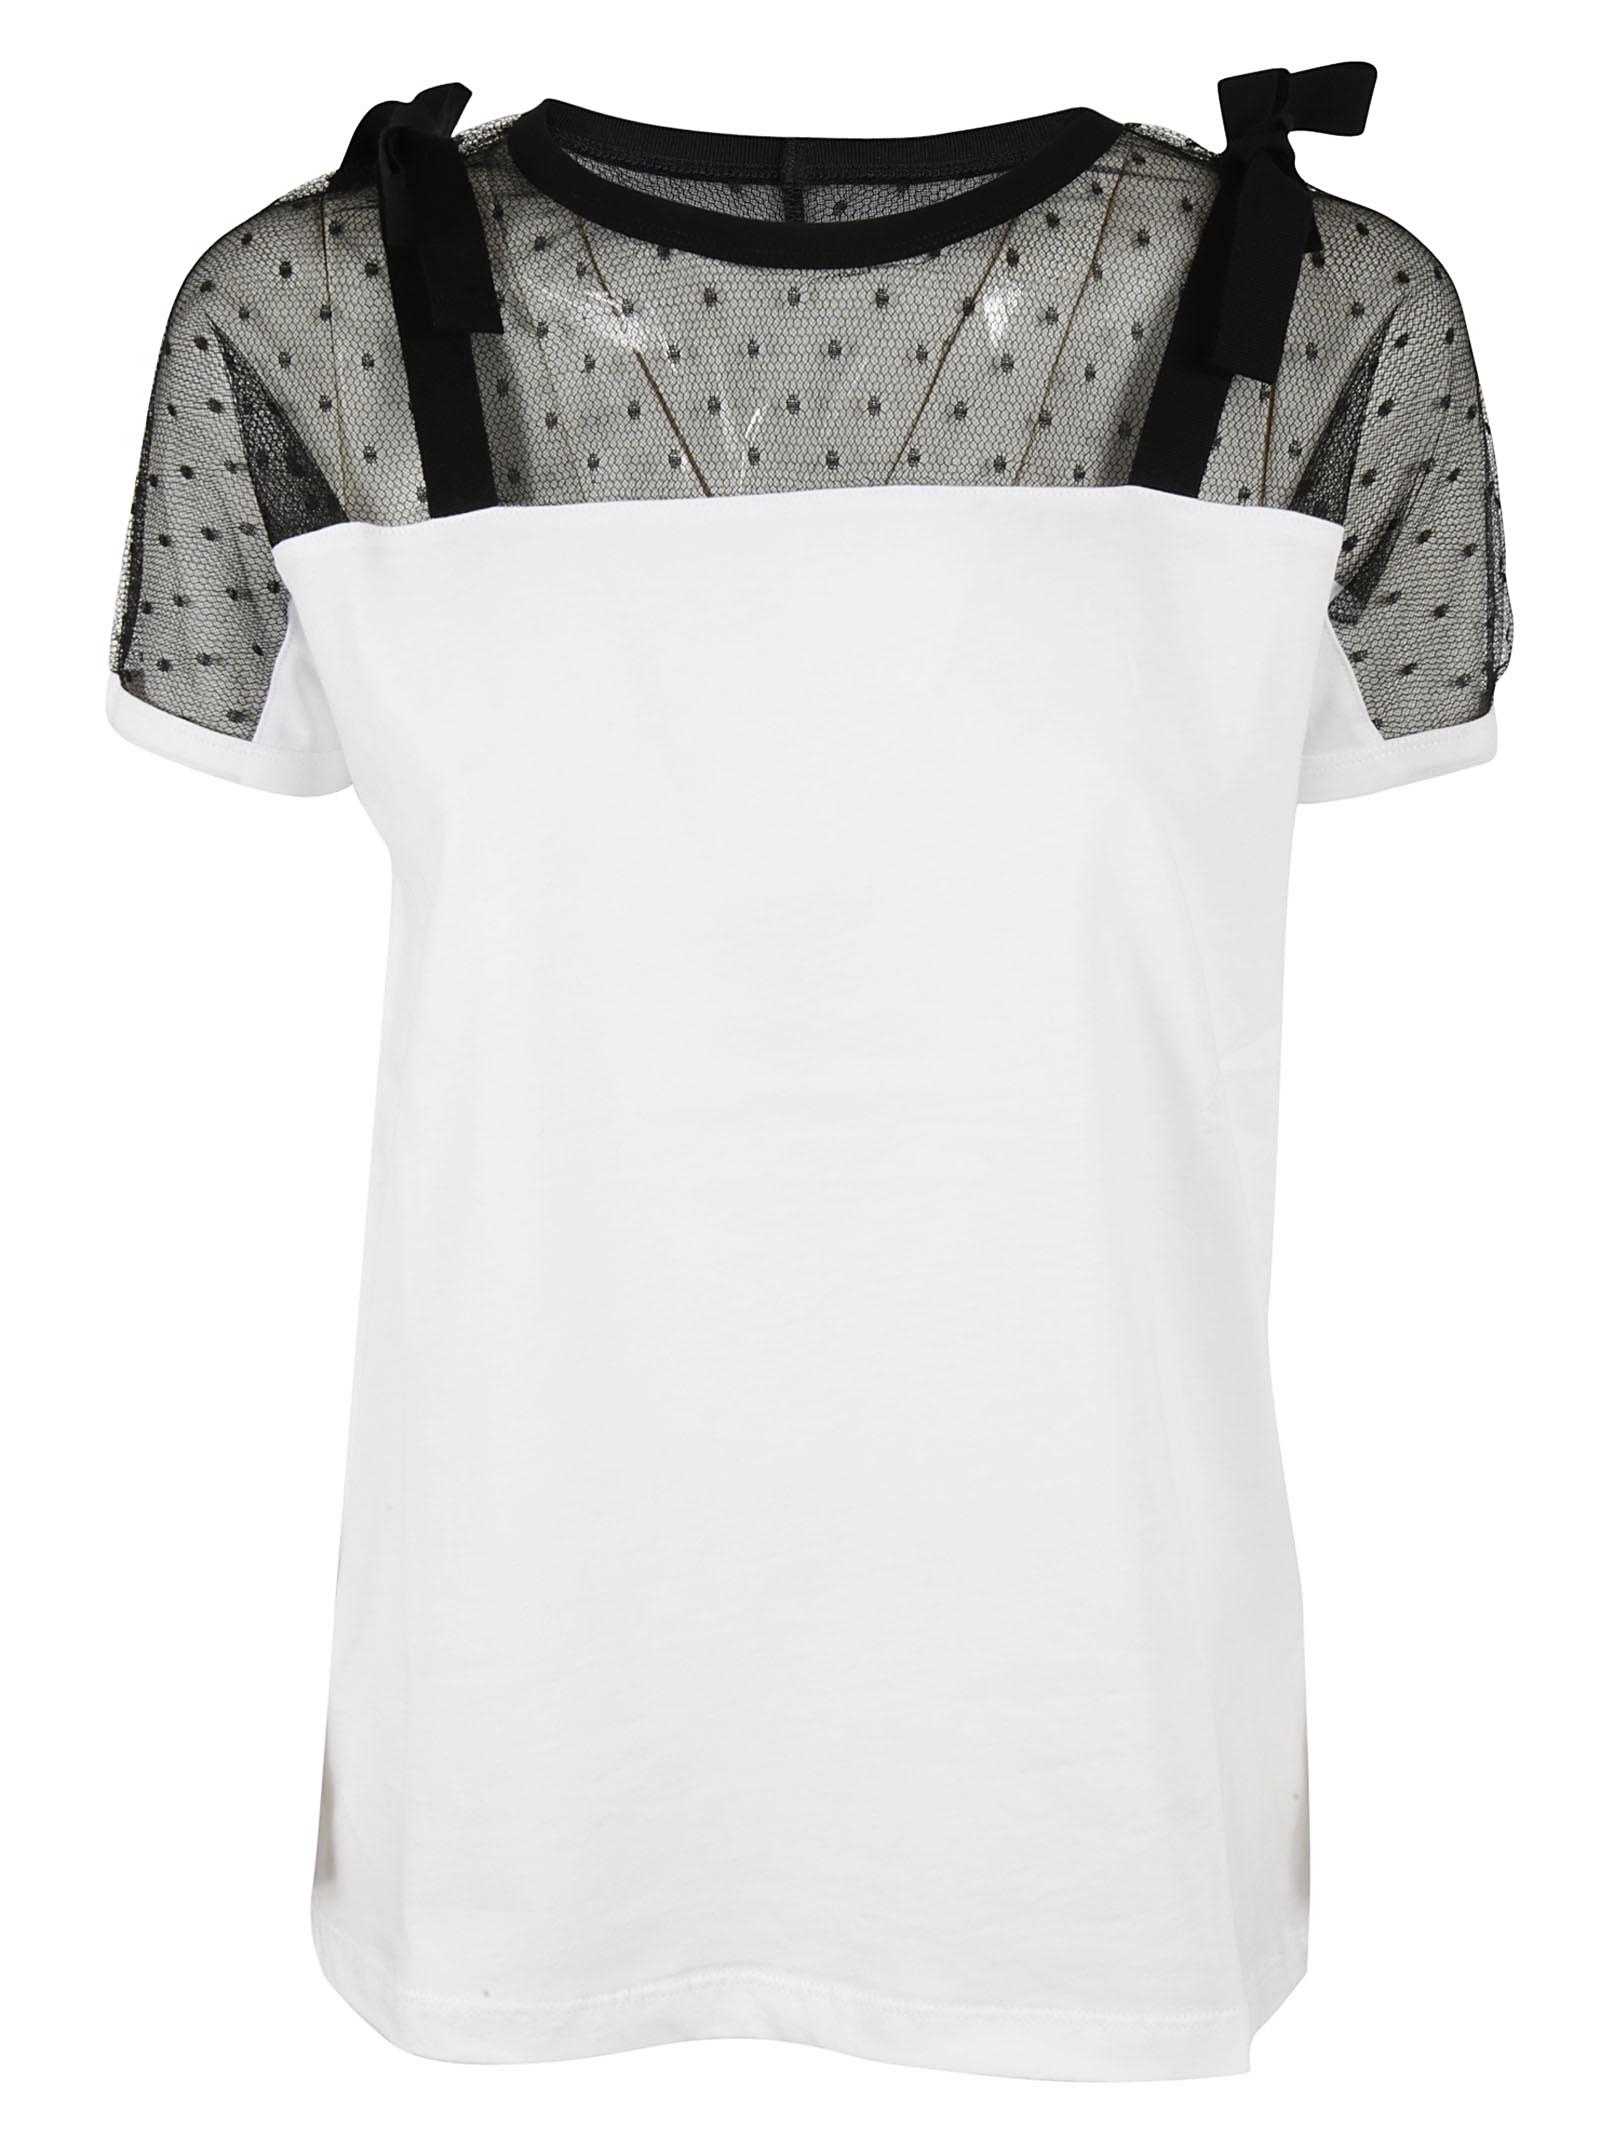 Lyst - RED Valentino Tulle Insert Short Sleeve T-shirt in White 64fc436c2